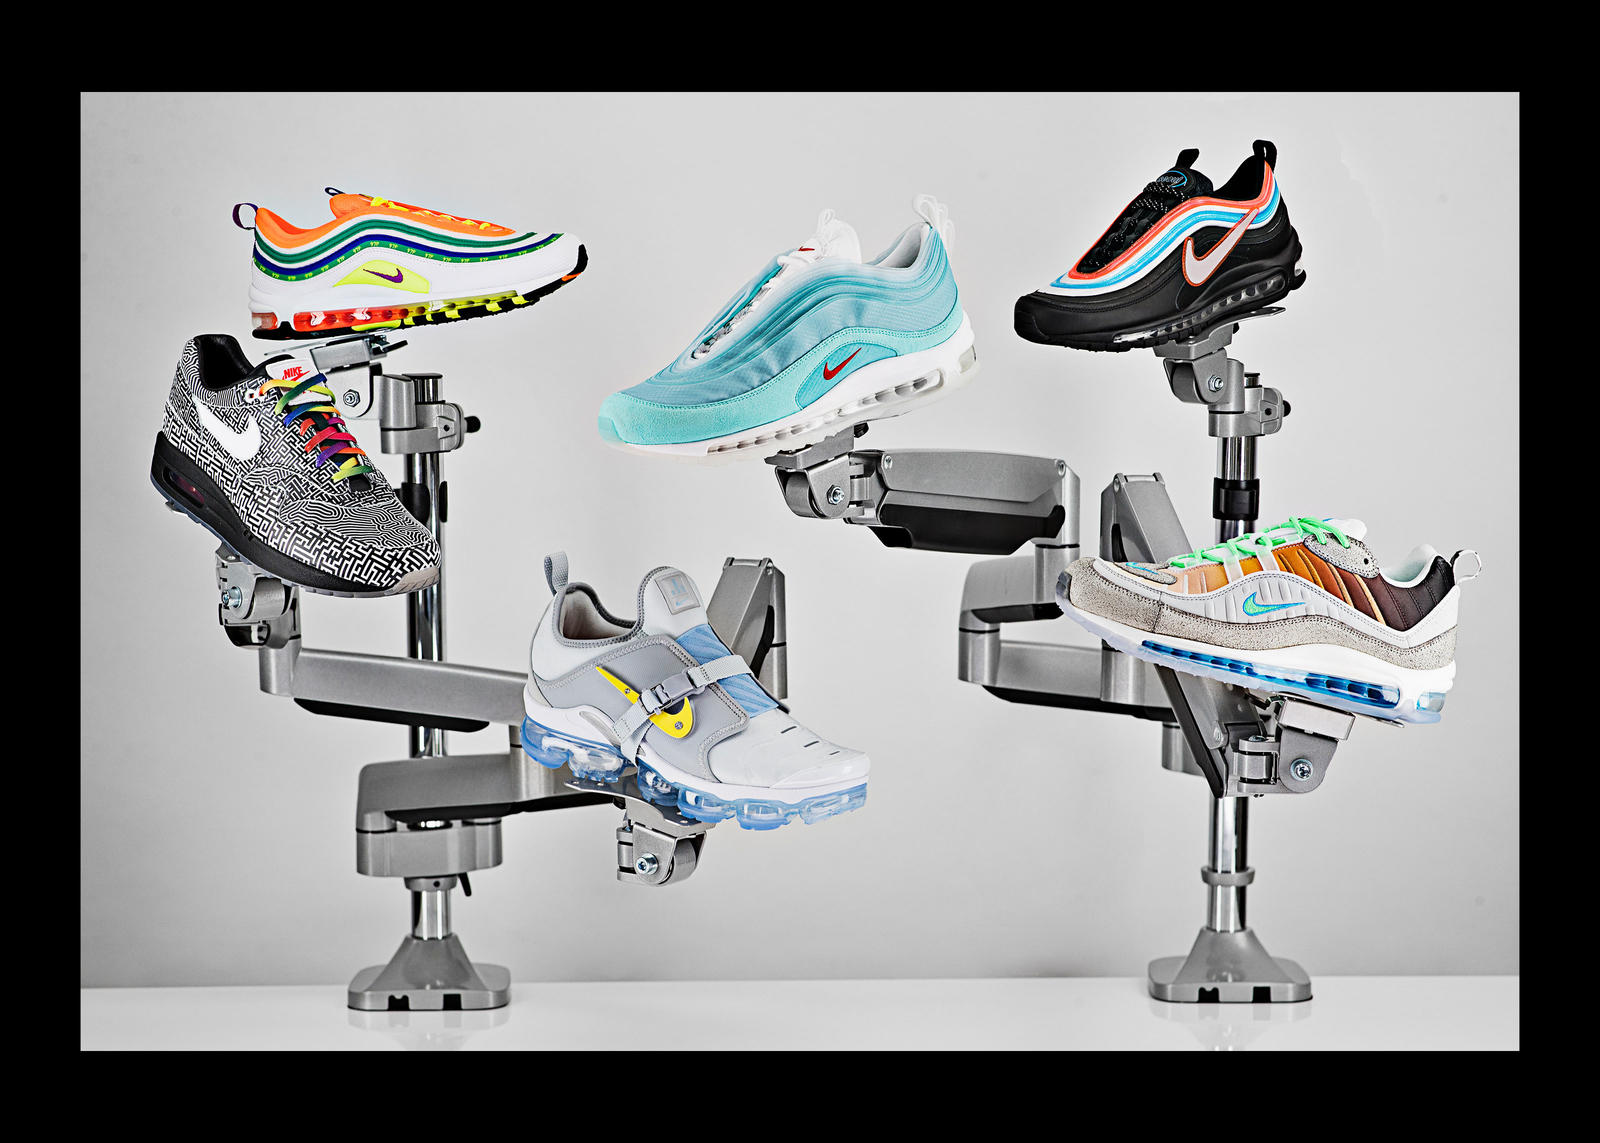 54569eb98561 Here are the Final Designs of the Nike  On Air Winners  Mock Draft